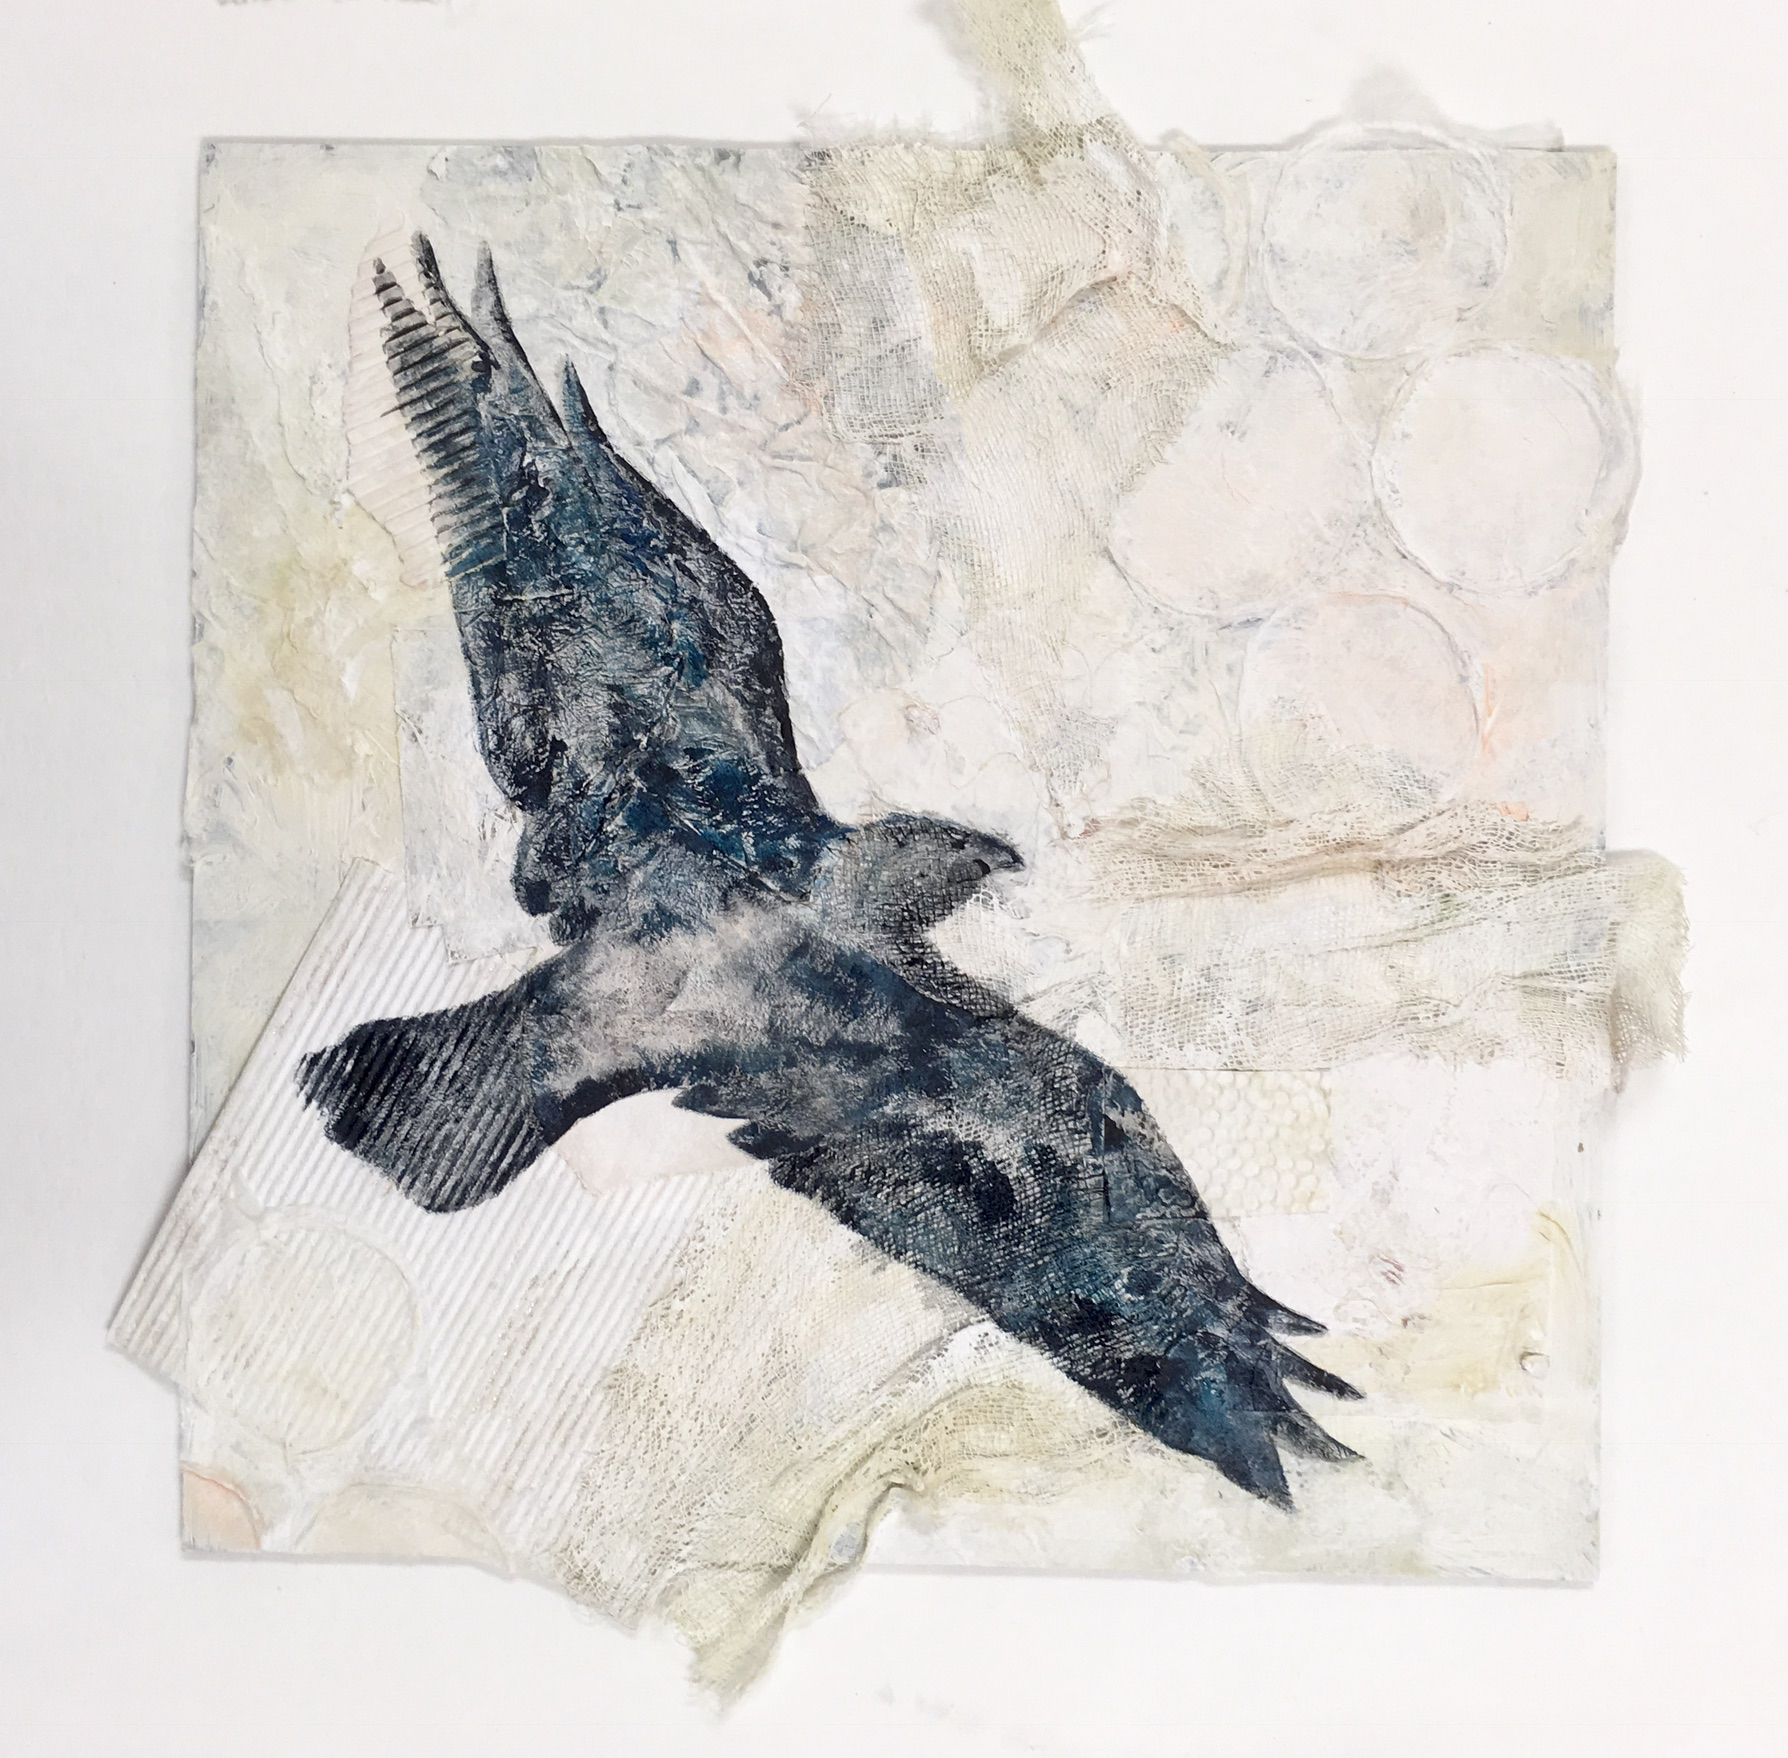 Raven #2, Black Canyon of the Gunnison National Park - mixed media